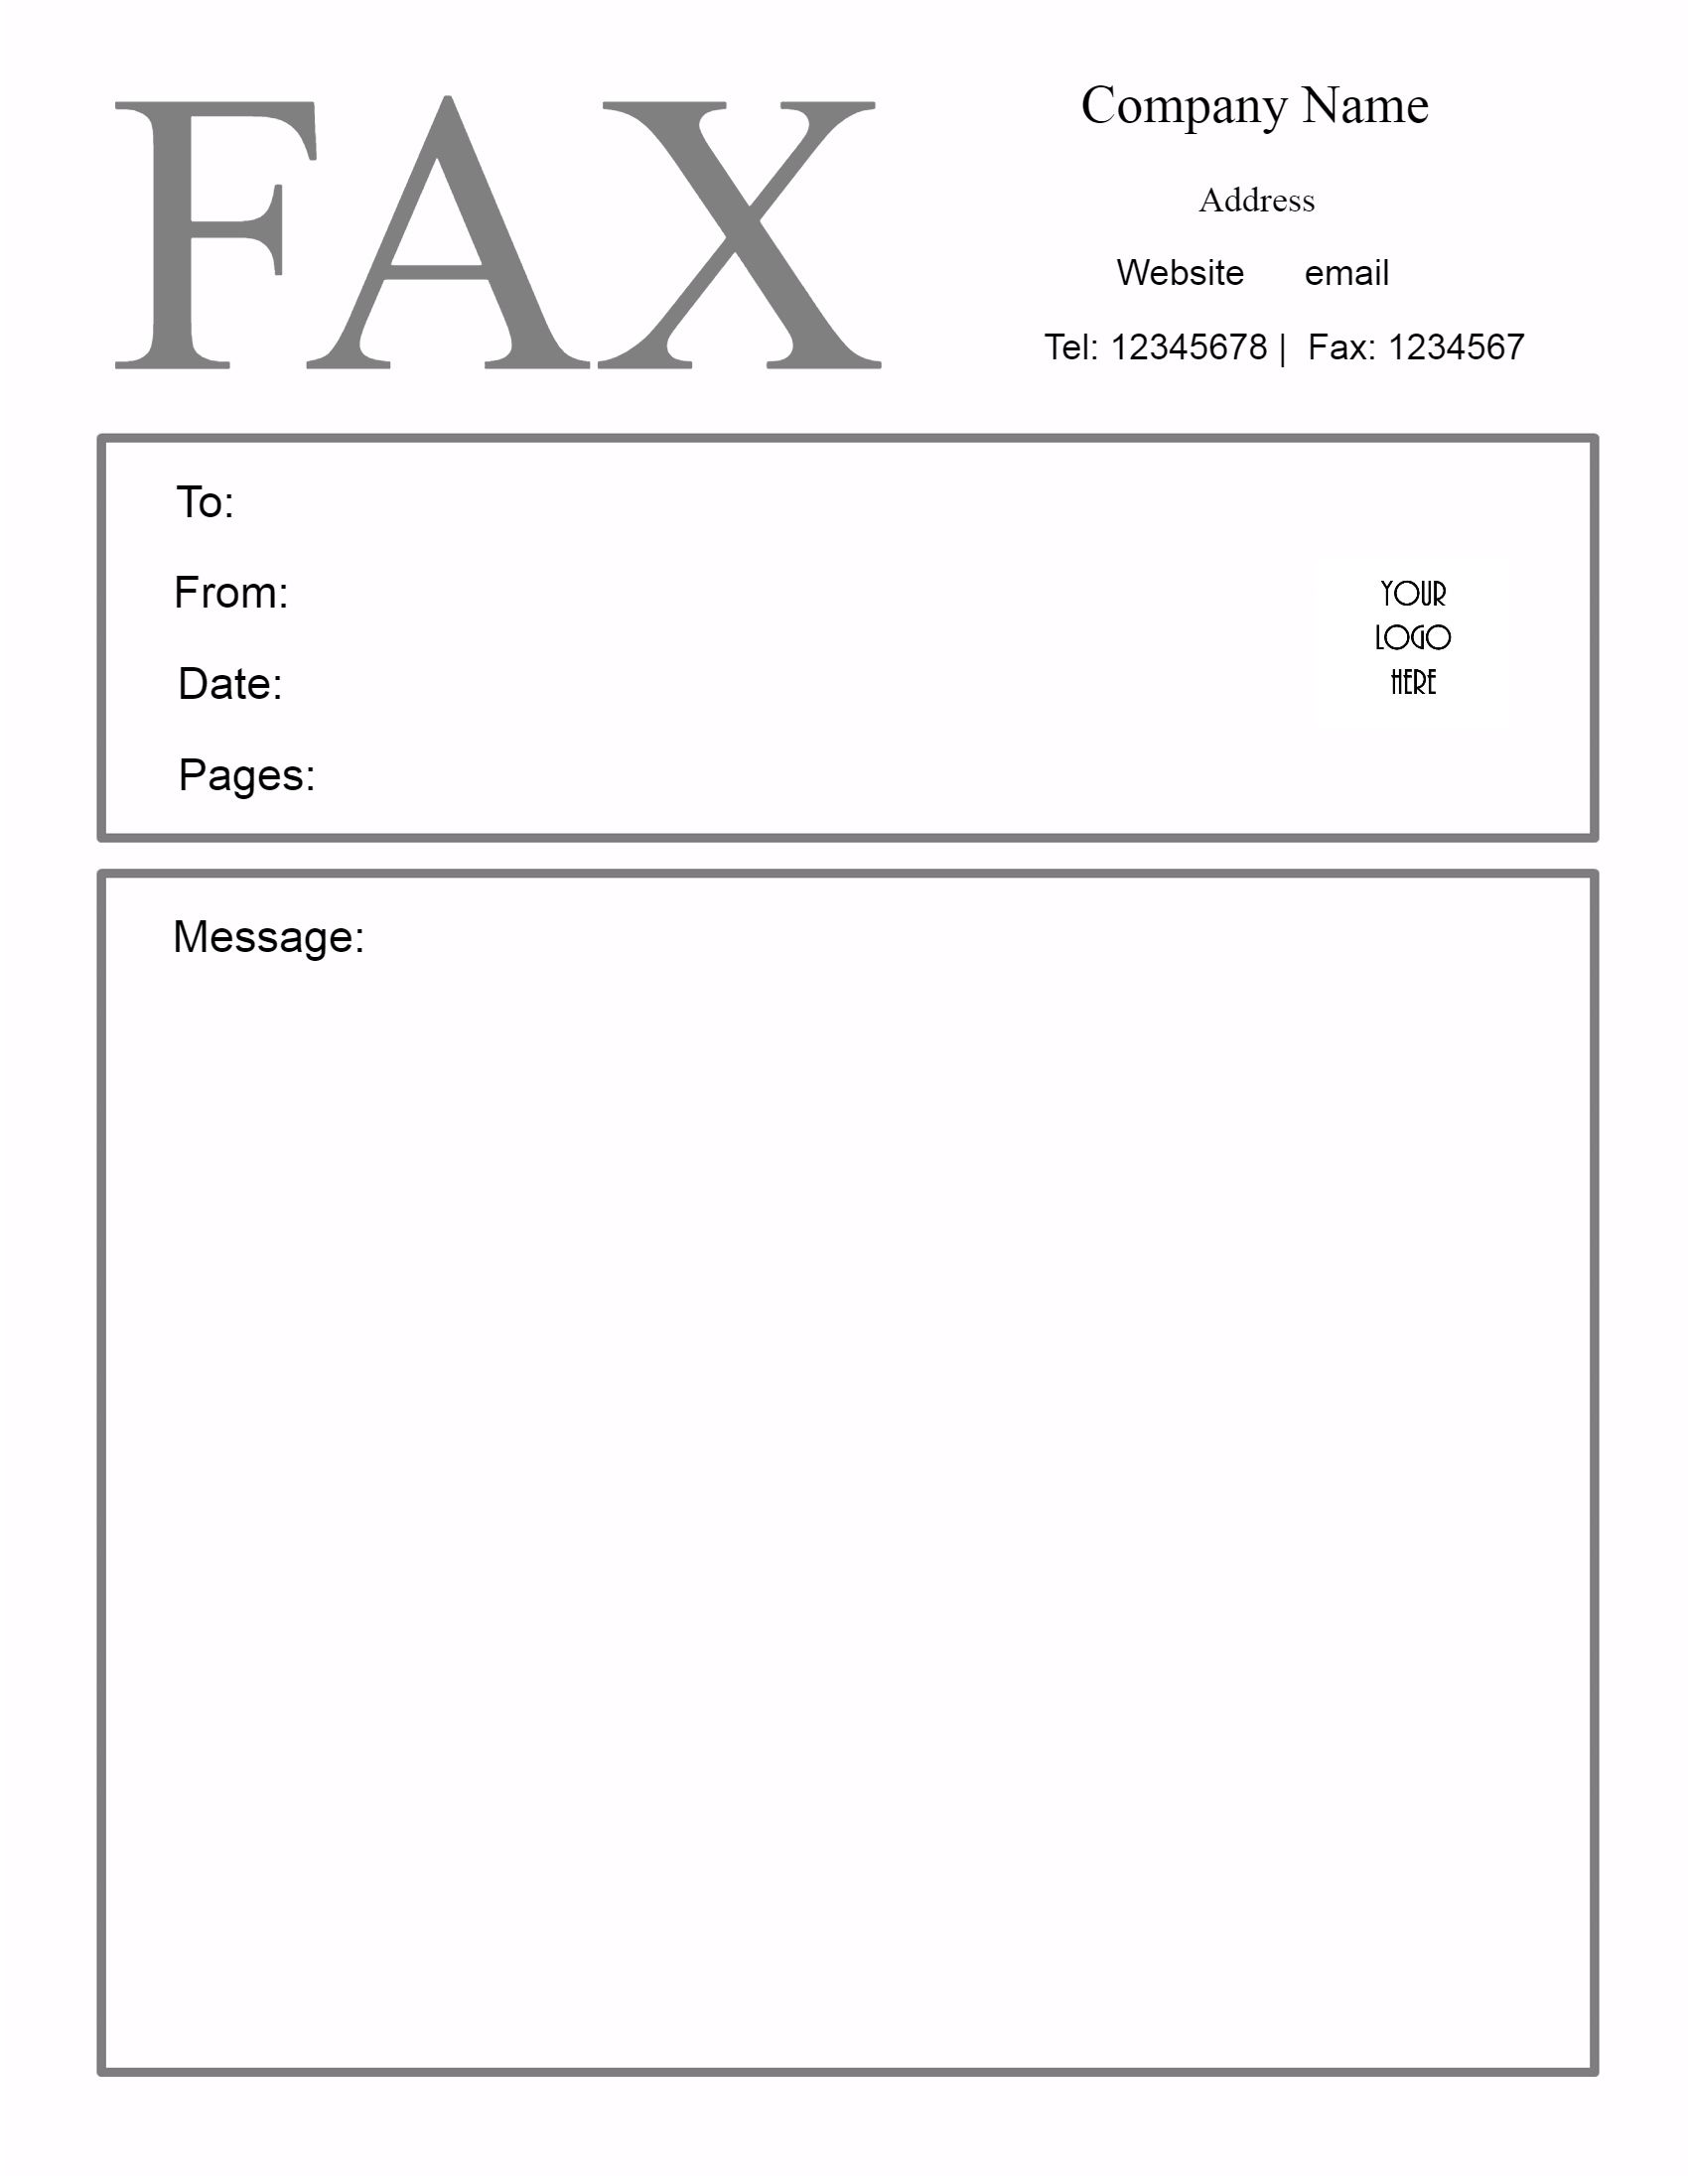 Fax Form Template education administrative assistant cover letter – Sample Fax Cover Sheet